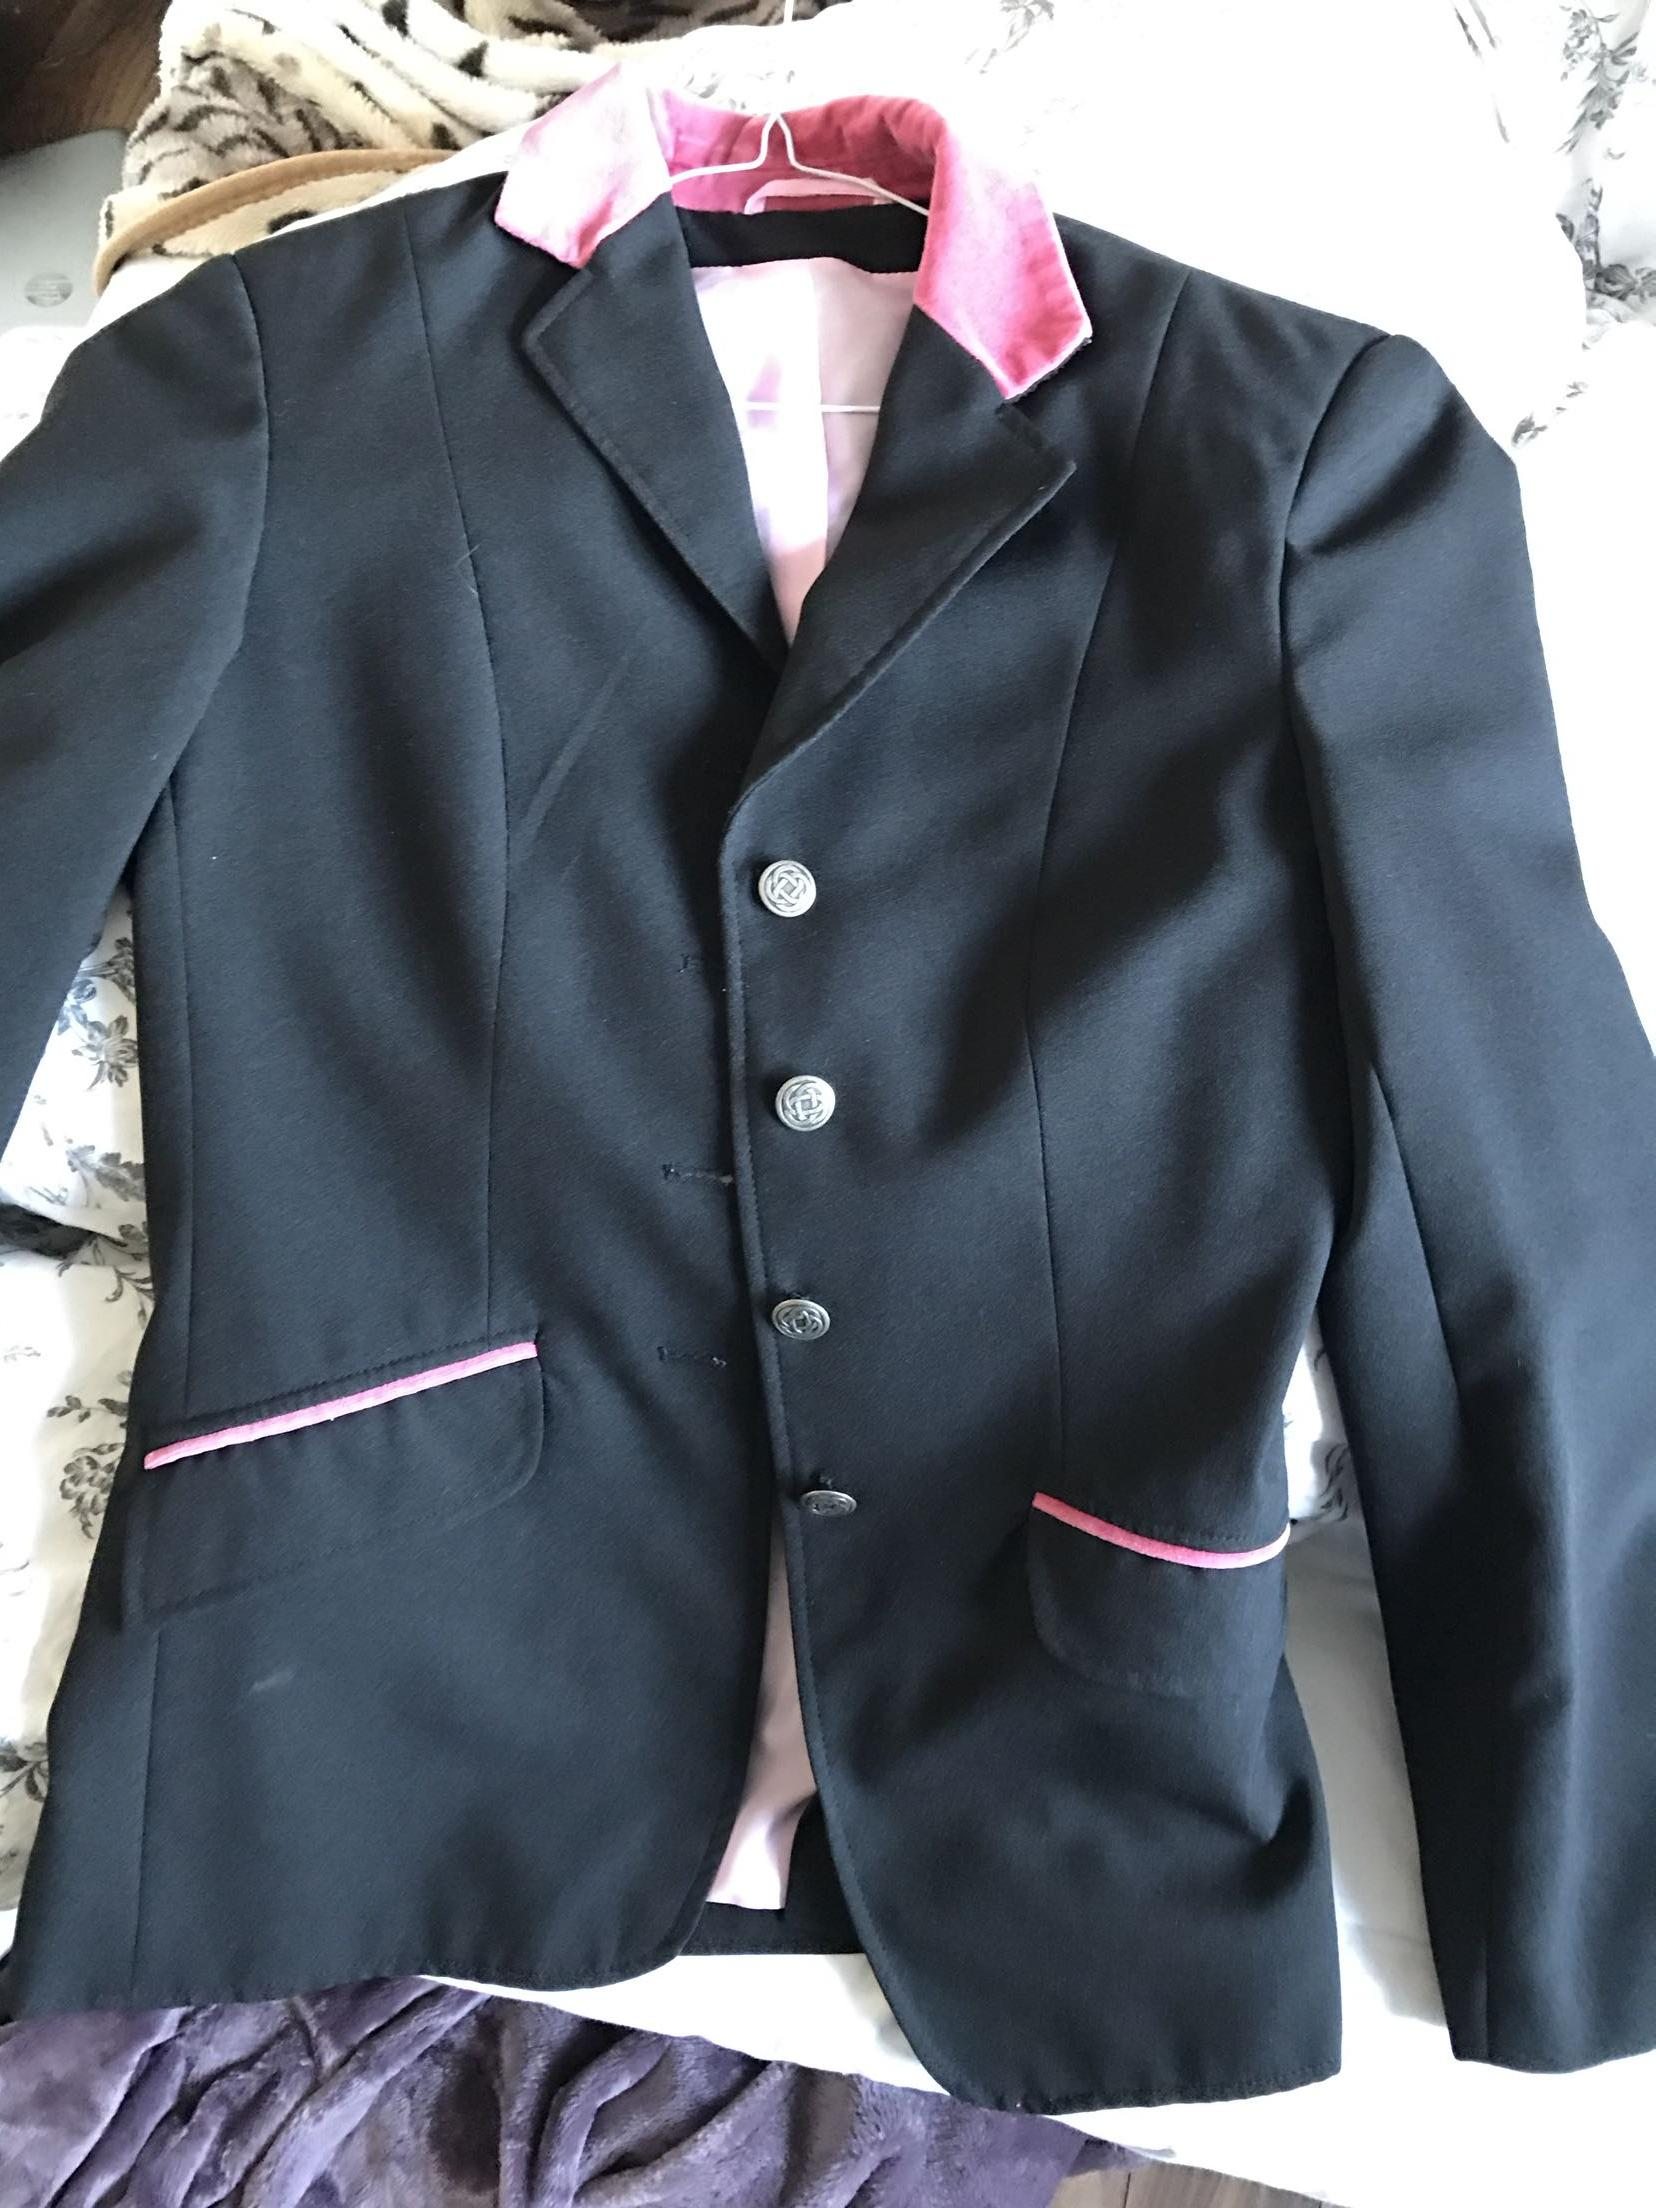 pink show jacket - Second Hand Horse Tack and Clothing, Buy and ...